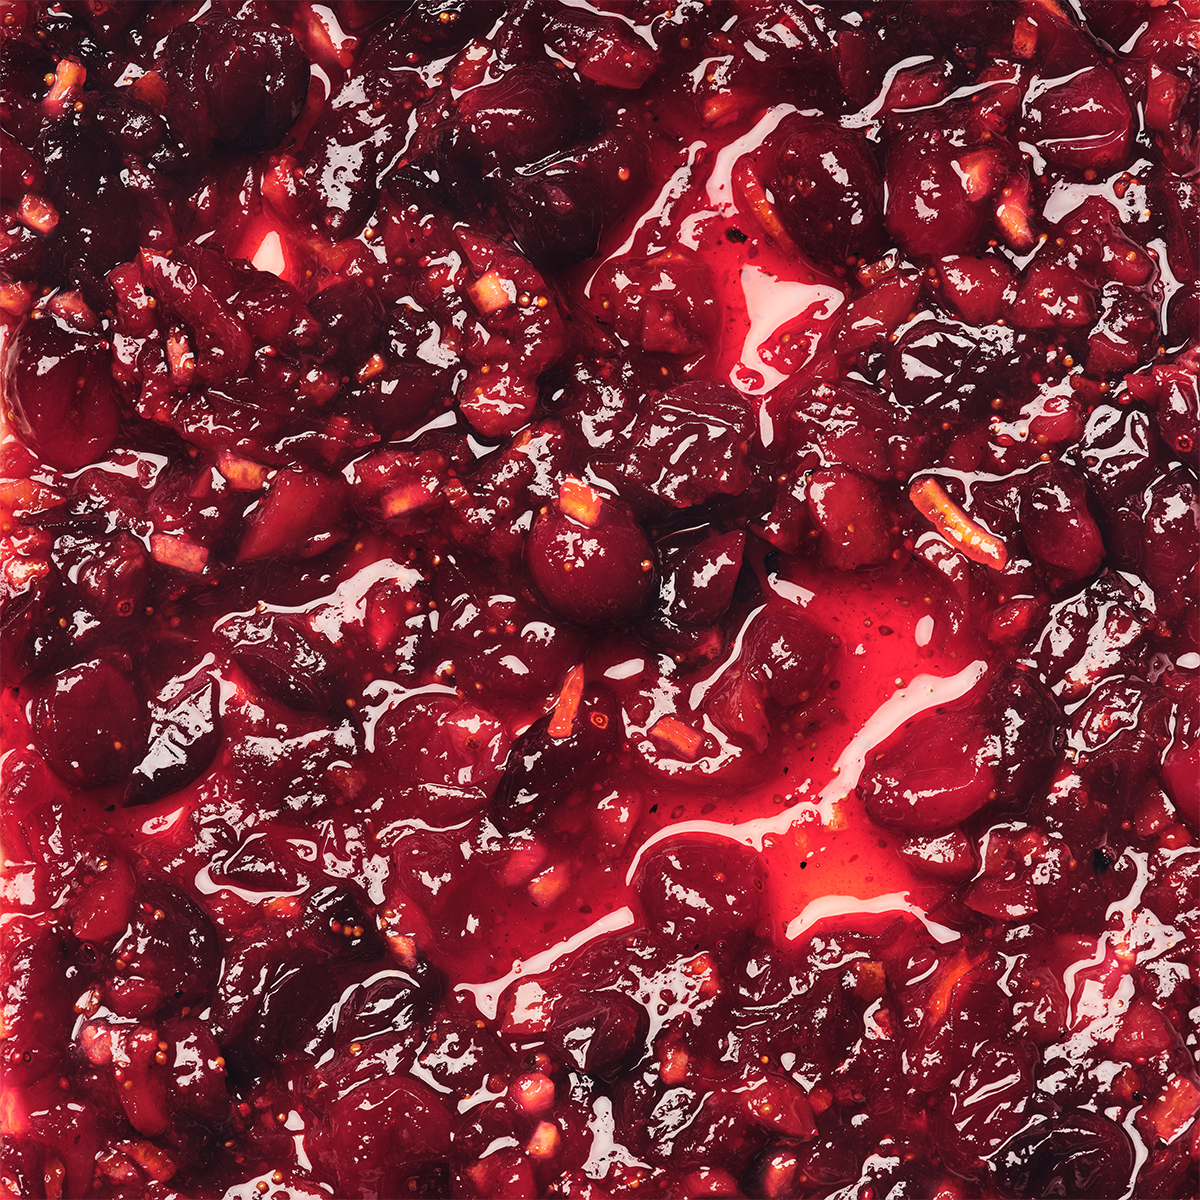 Fancy Cranberry Sauce with Dried Figs & Candied Orange Peel